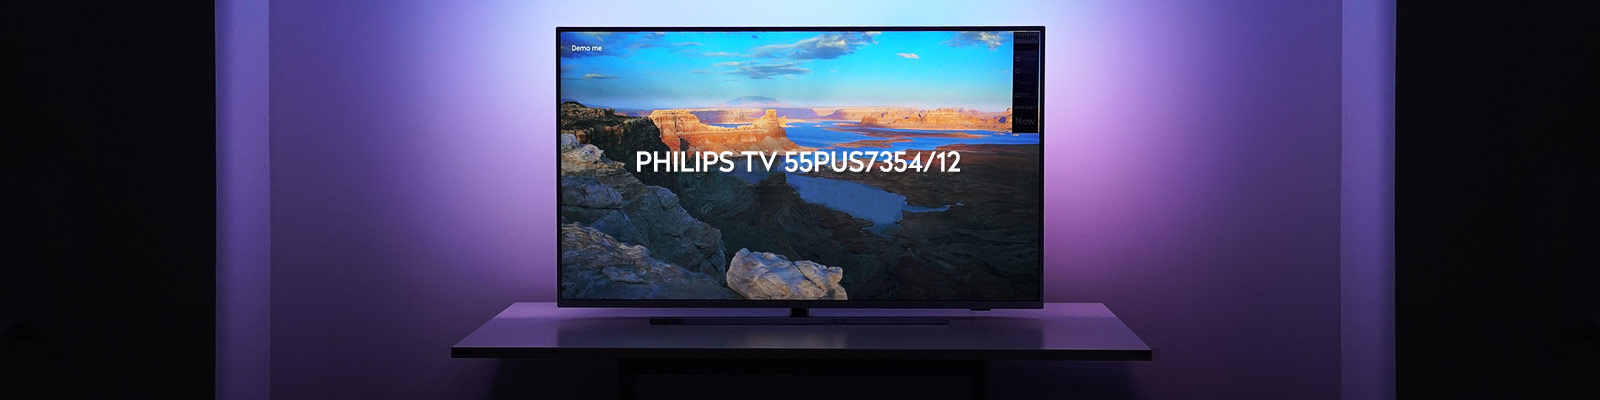 philips-header